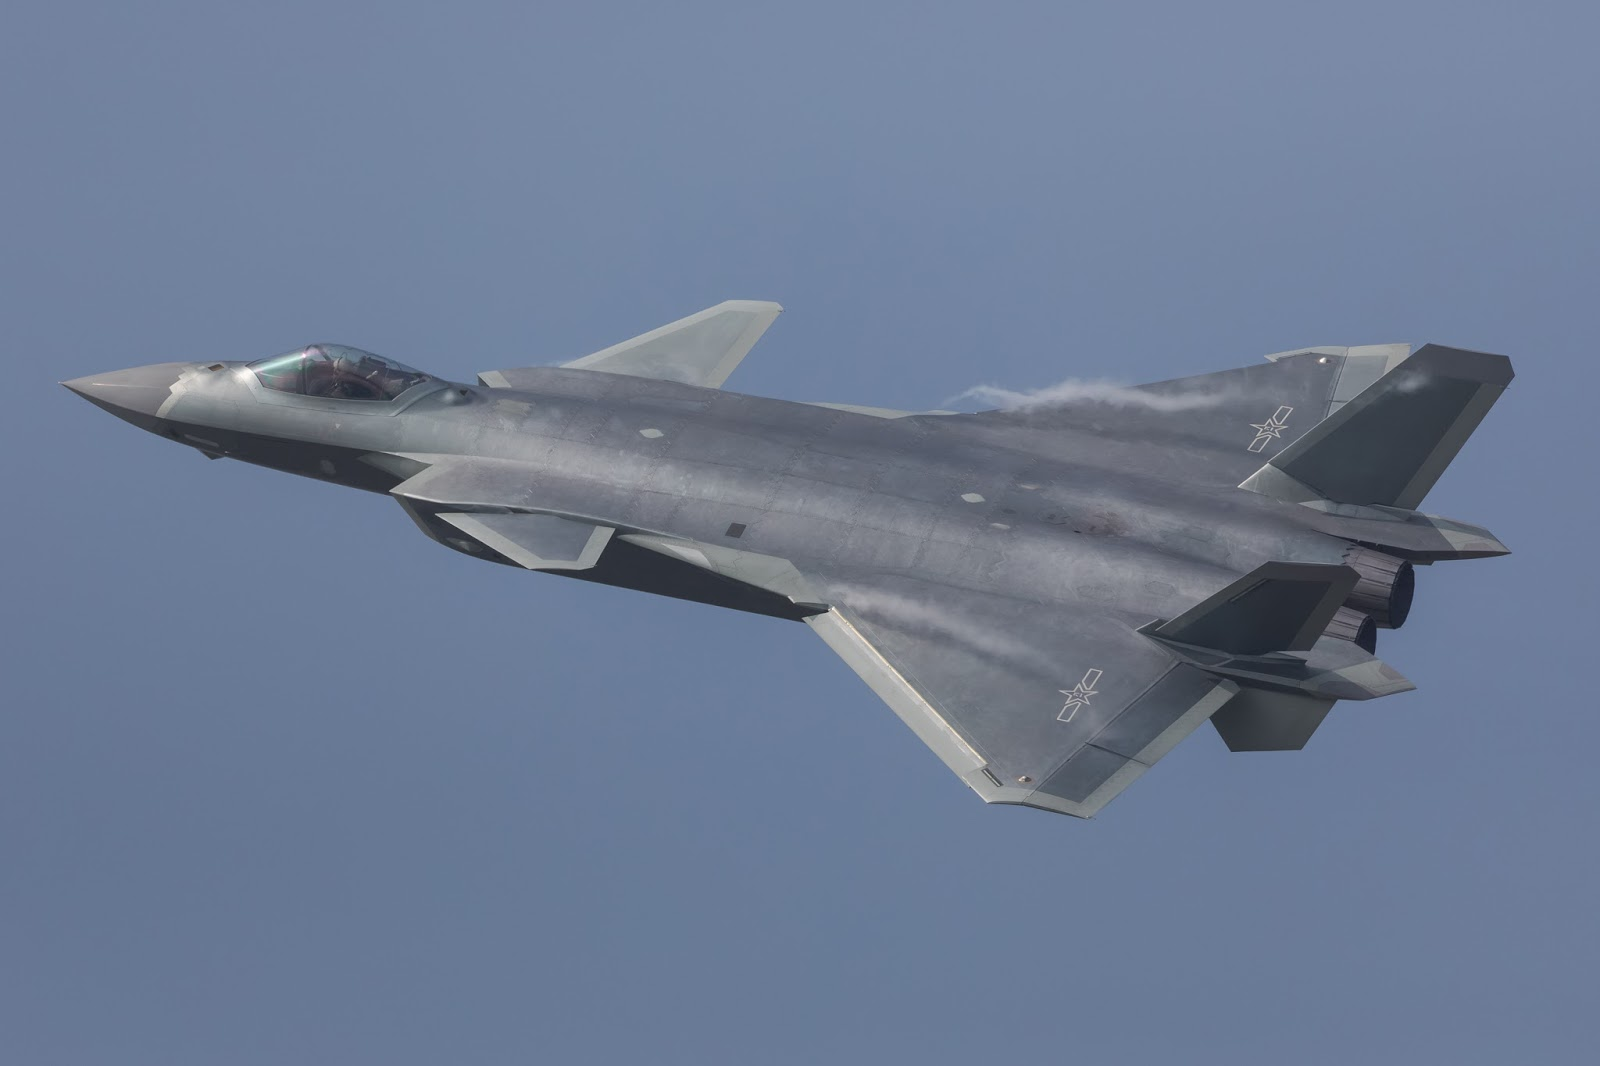 Reviews and analysis of China J20 stealth fighter